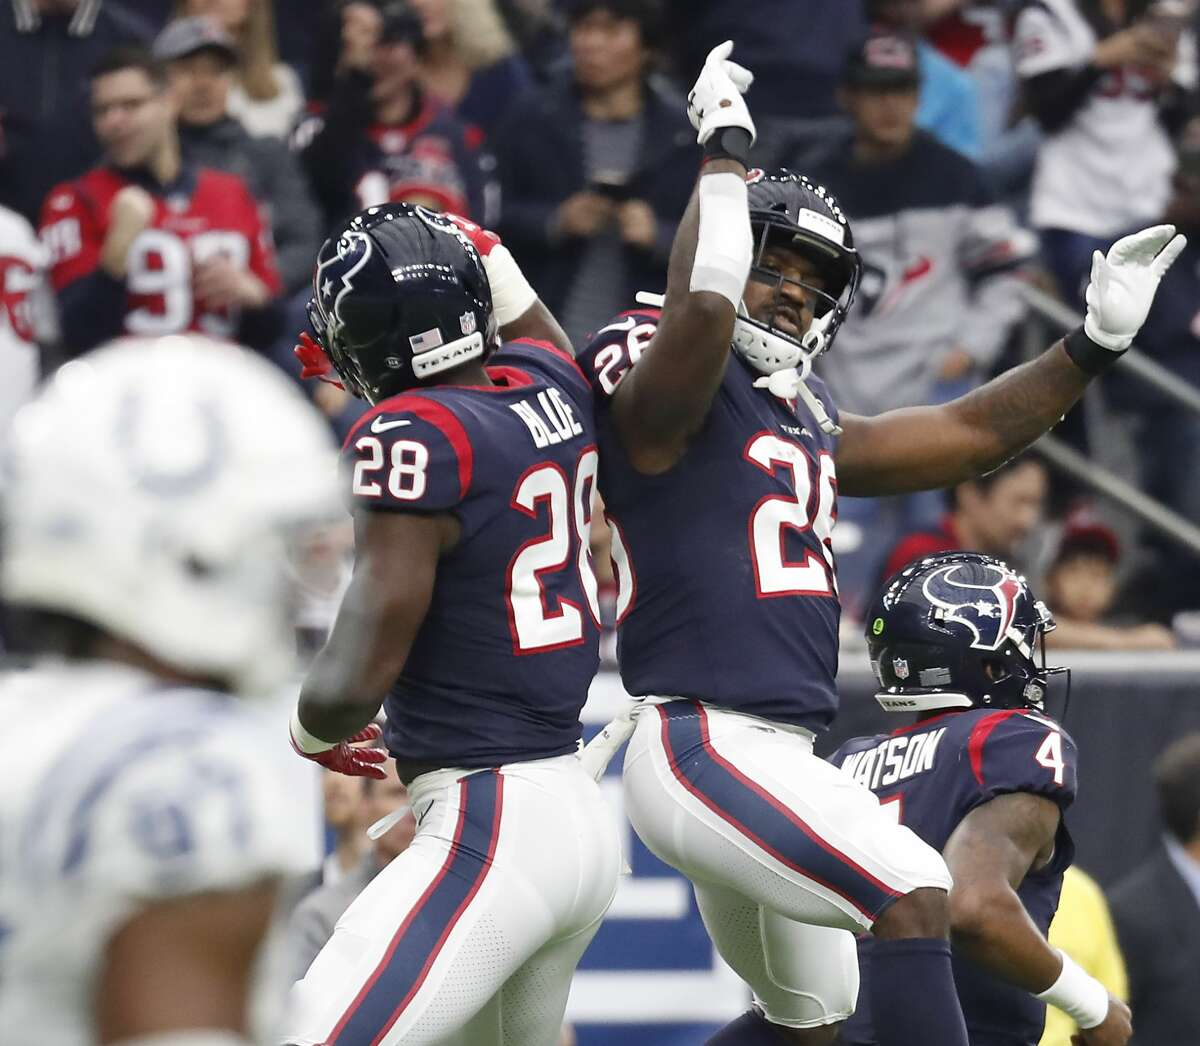 Houston Texans running back Alfred Blue (28) and Houston Texans running back Lamar Miller (26) celebrate Blue's 3-yard touchdown run against the Indianapolis Colts during the first quarter of an NFL football game at NRG Stadium on Sunday, Dec. 9, 2018, in Houston.